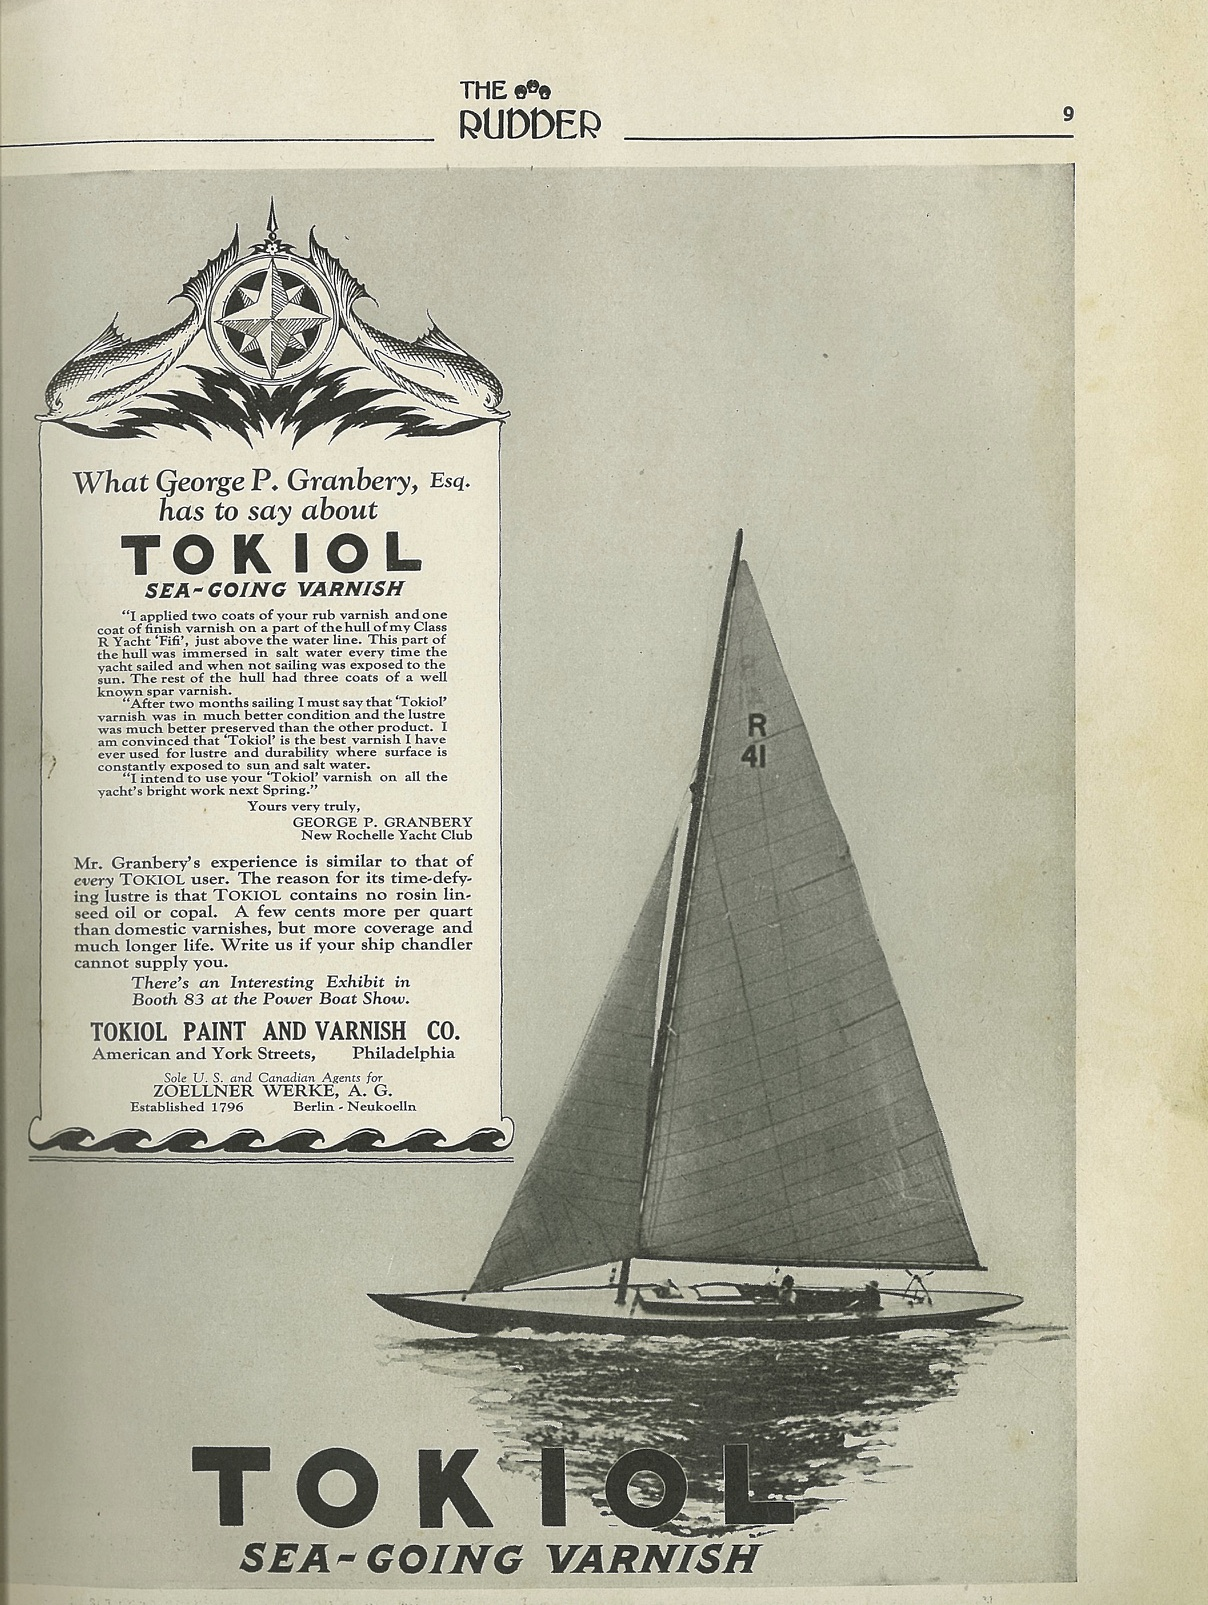 """FIFI featured in advertisement in """"The Rudder"""", January 1927"""